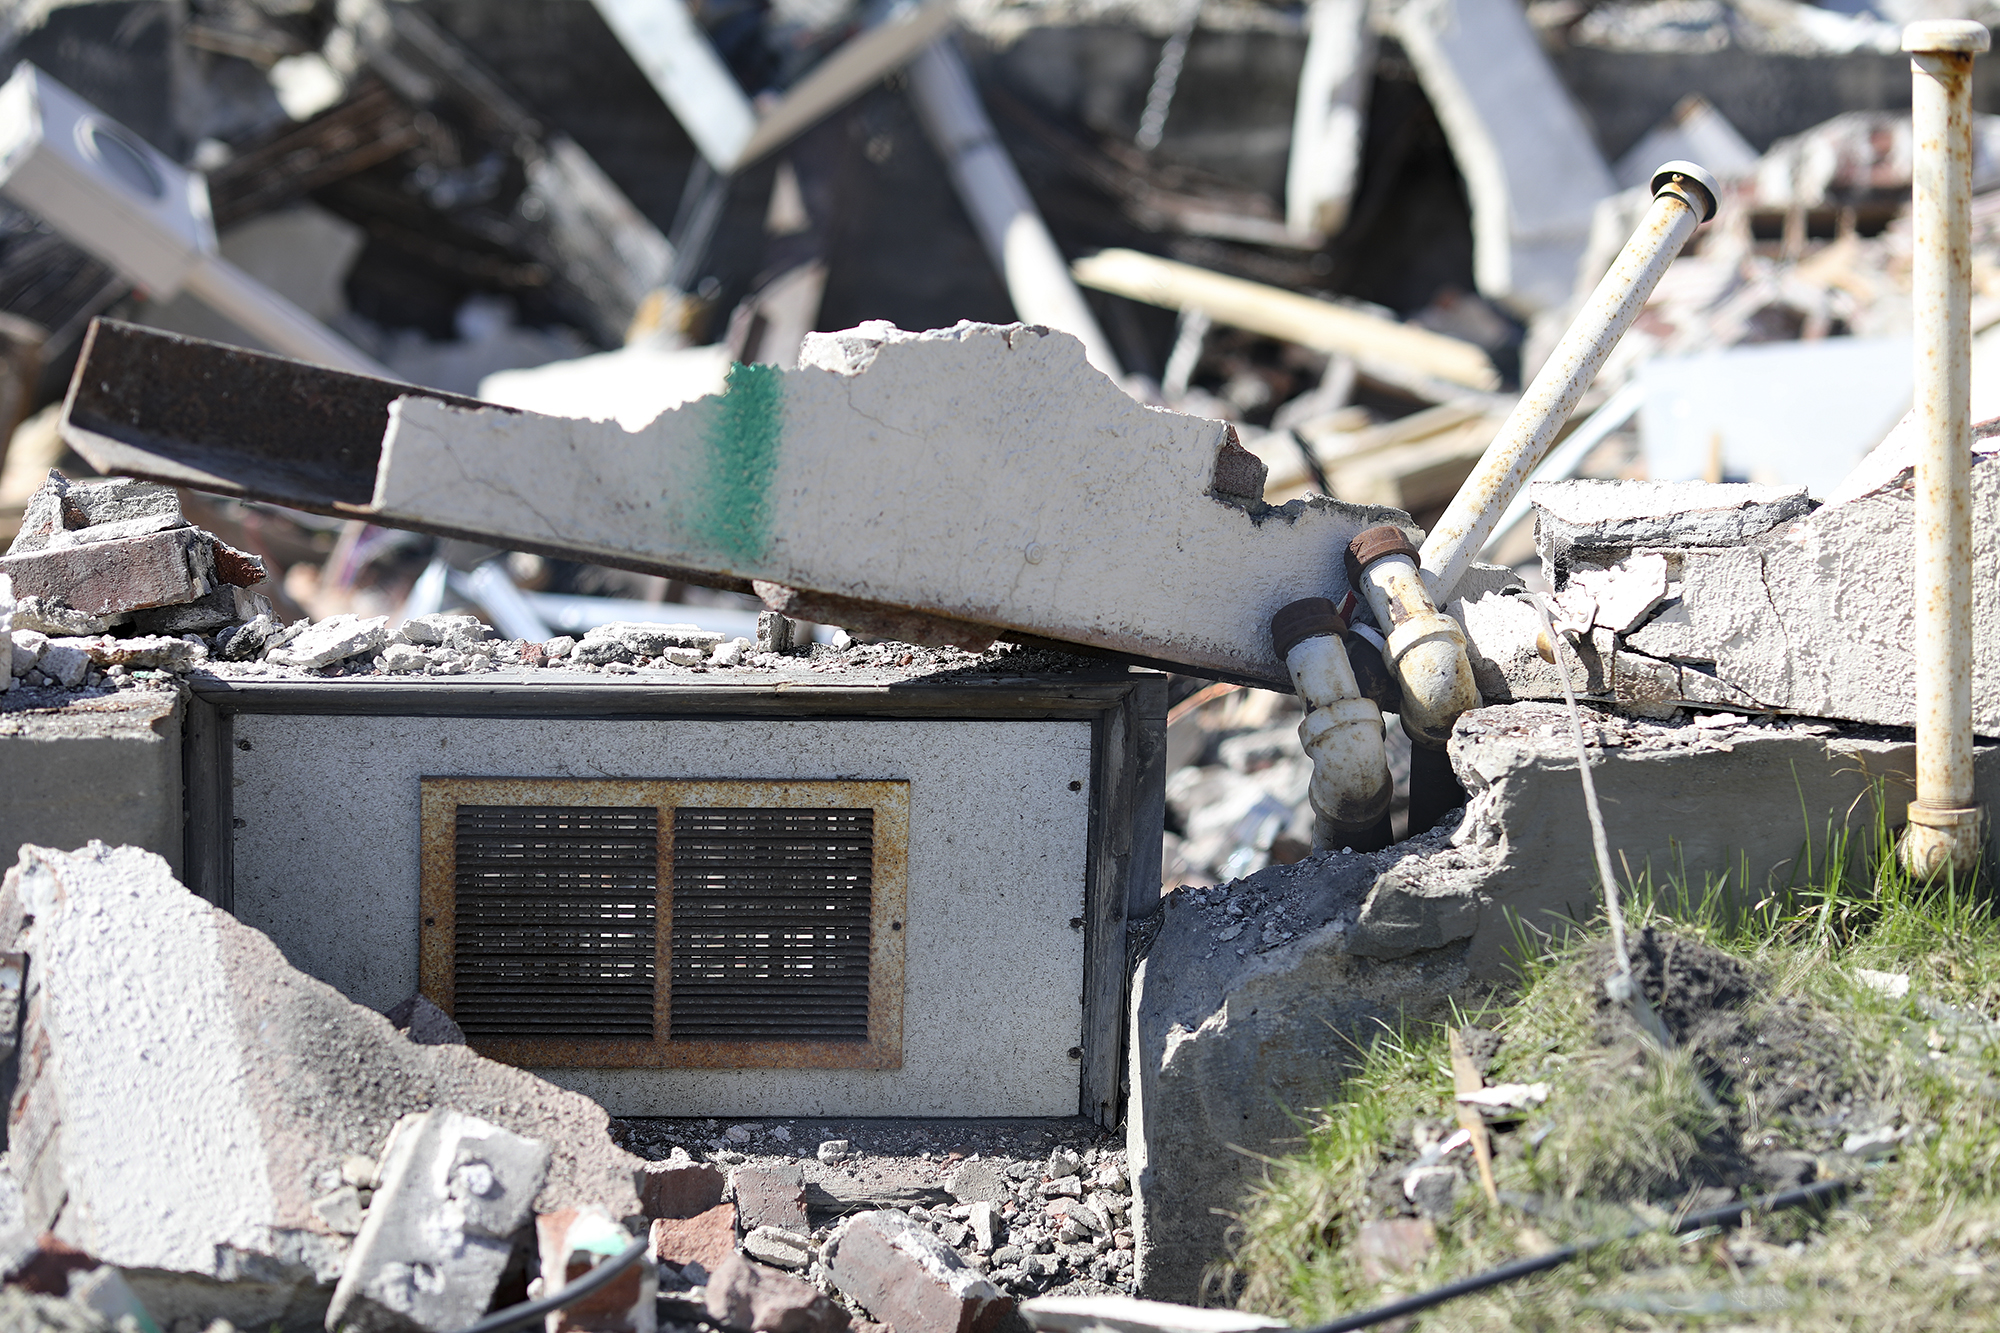 A photo of a window frame that remains intact despite the demolition effort.